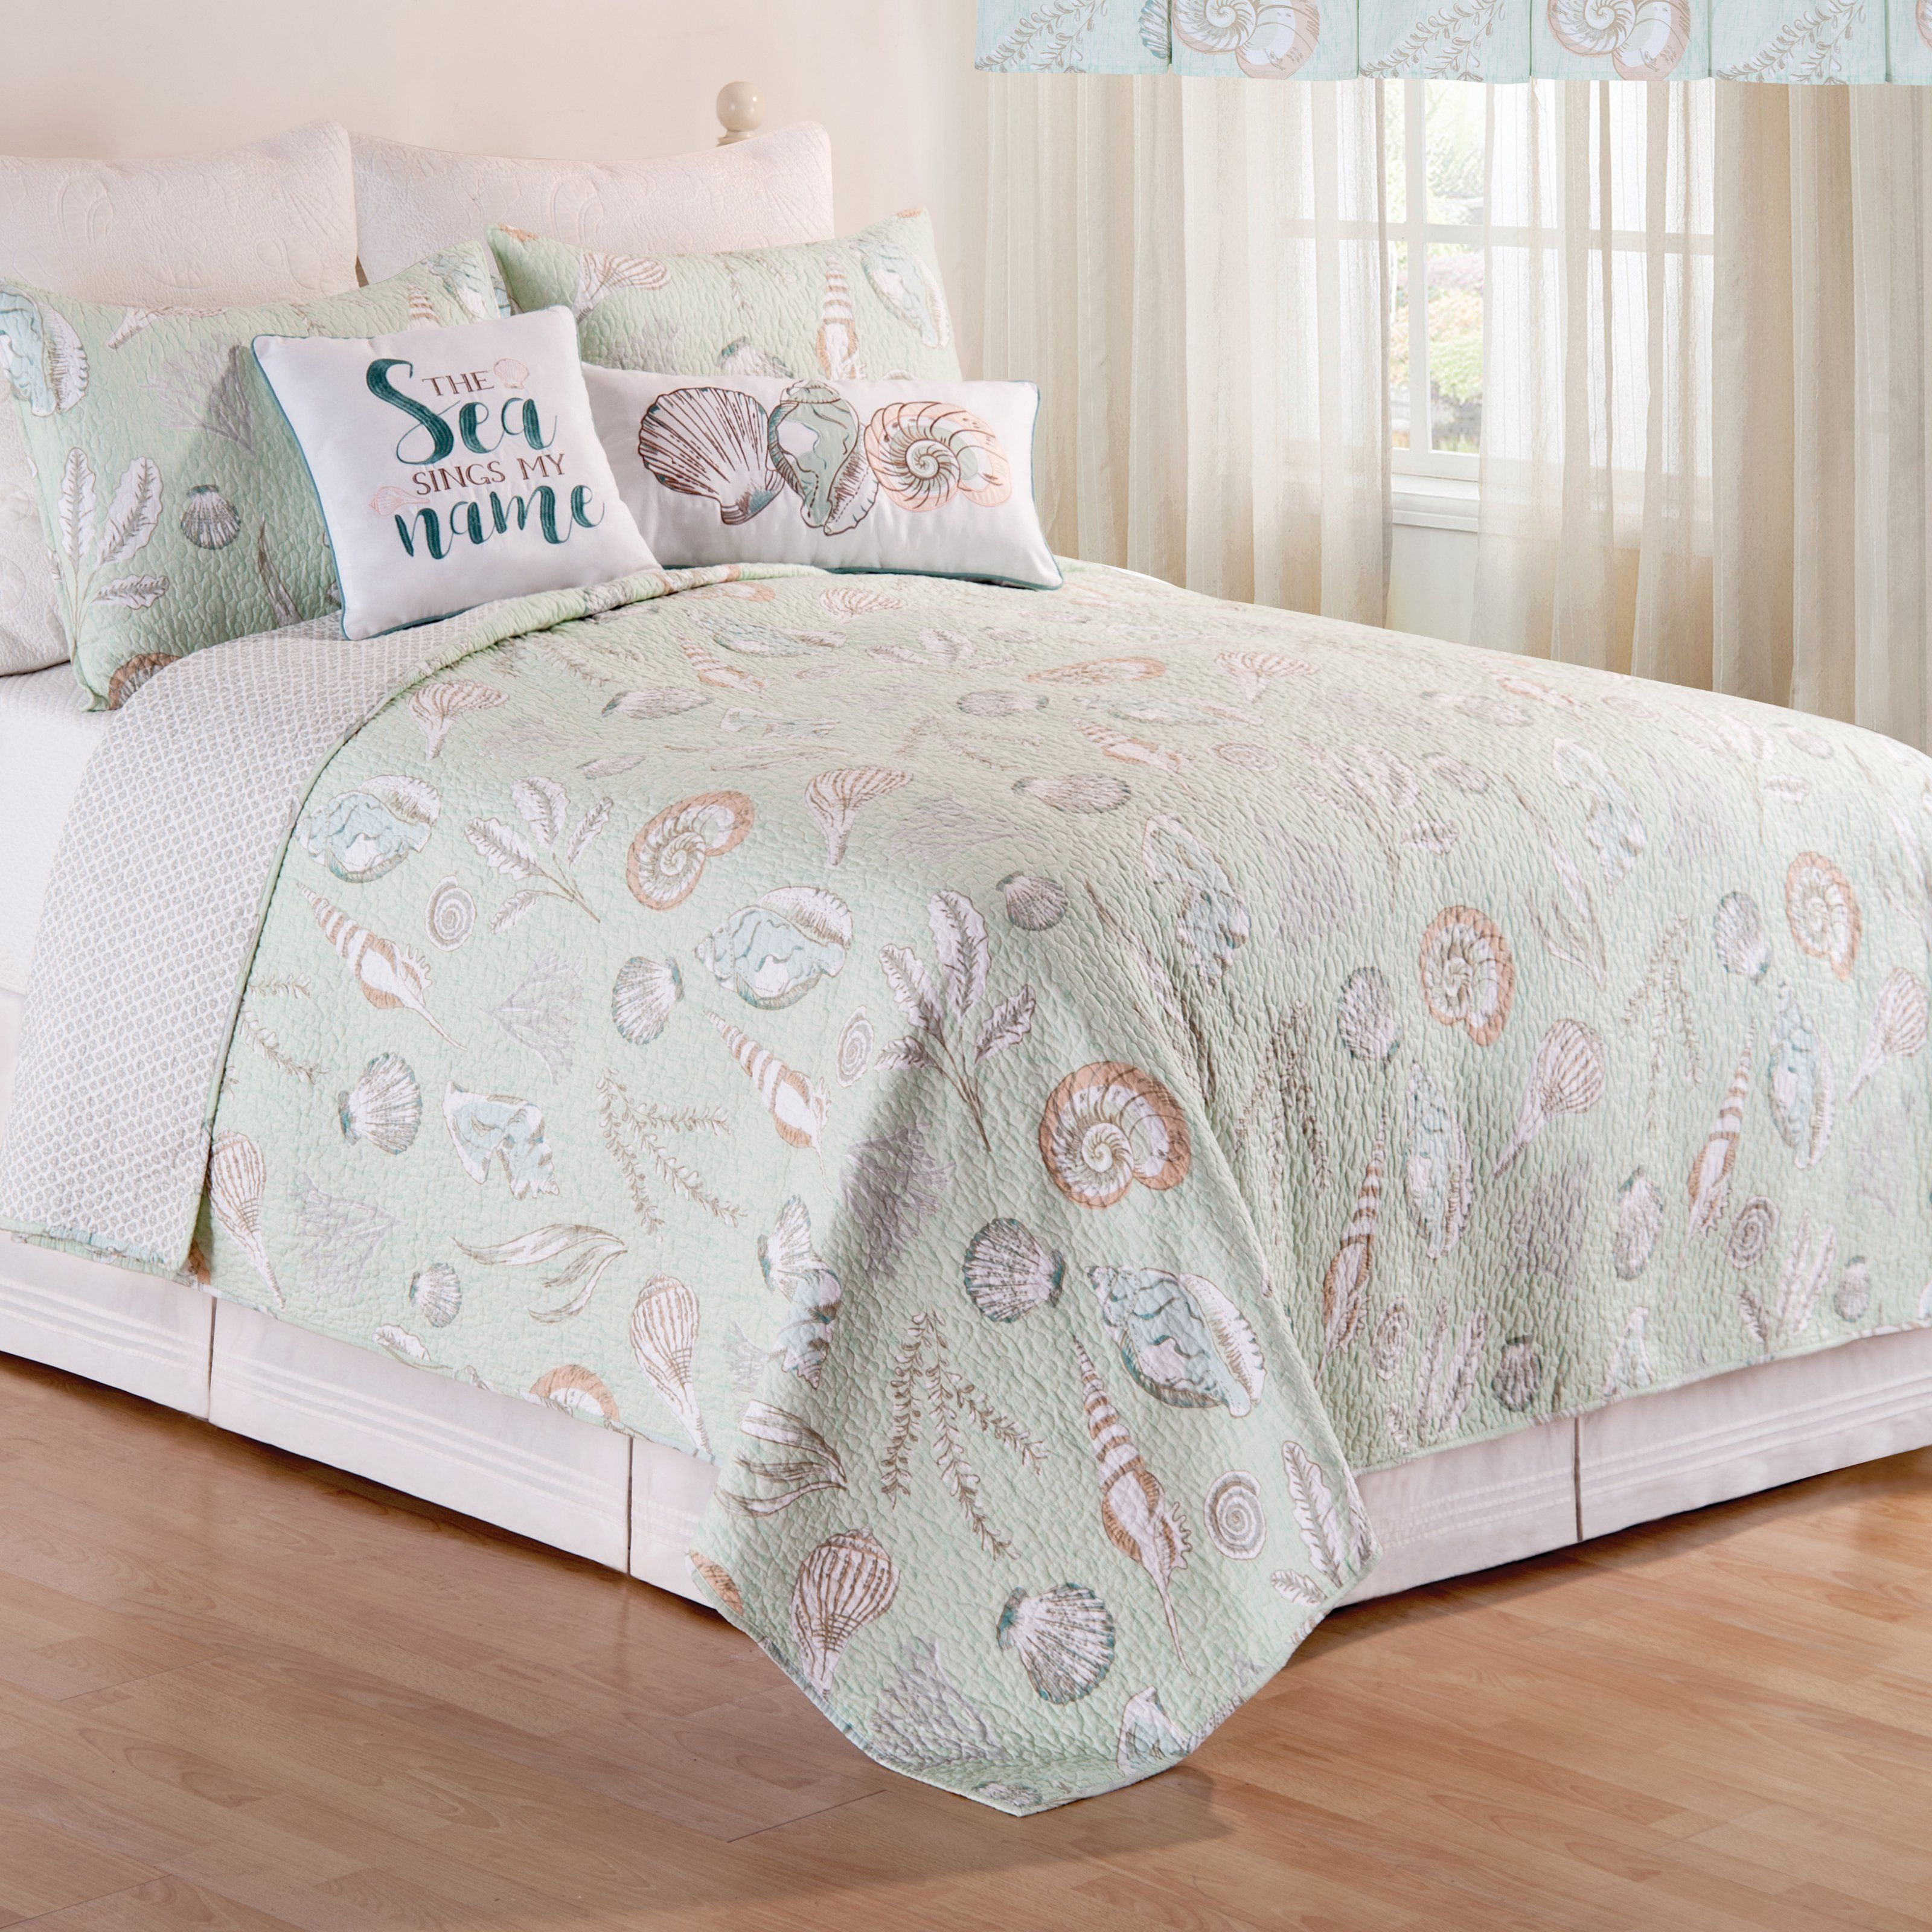 Best Breezy Shores Quilt Set By C F Home 82200 2Tset King 400 x 300